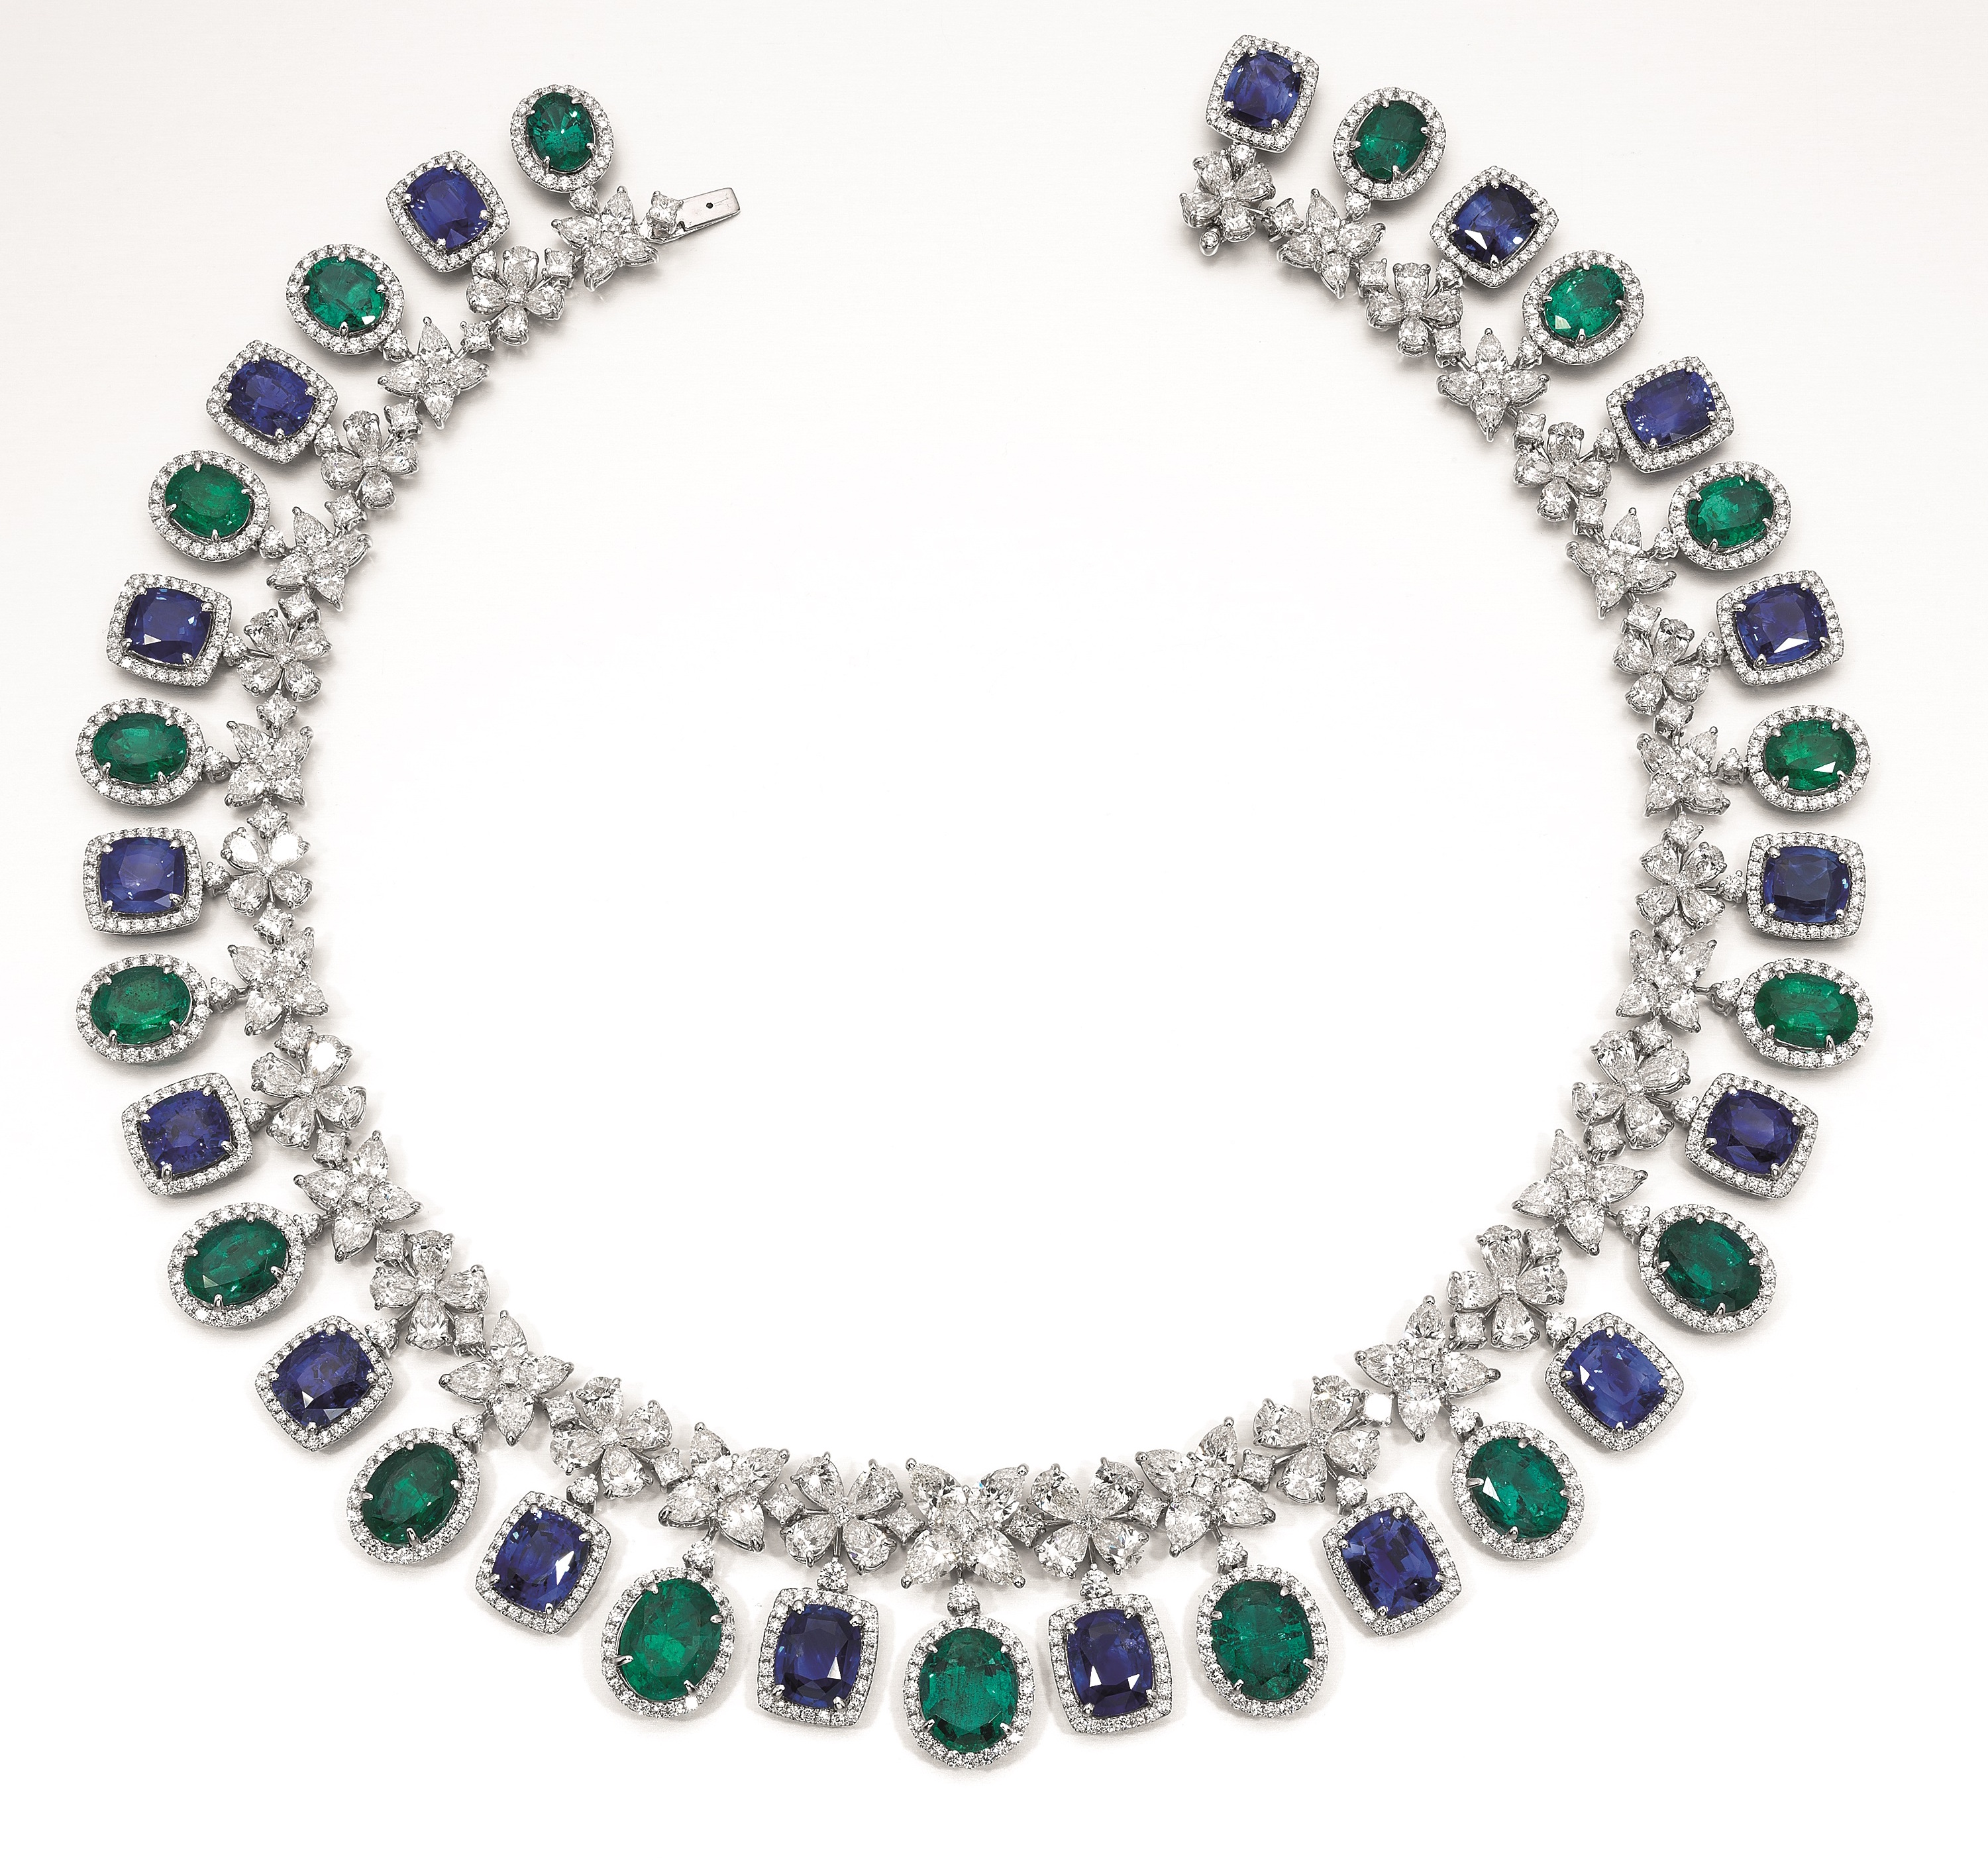 Butani sapphire, emerald, and diamond collier | JCK On Your Market